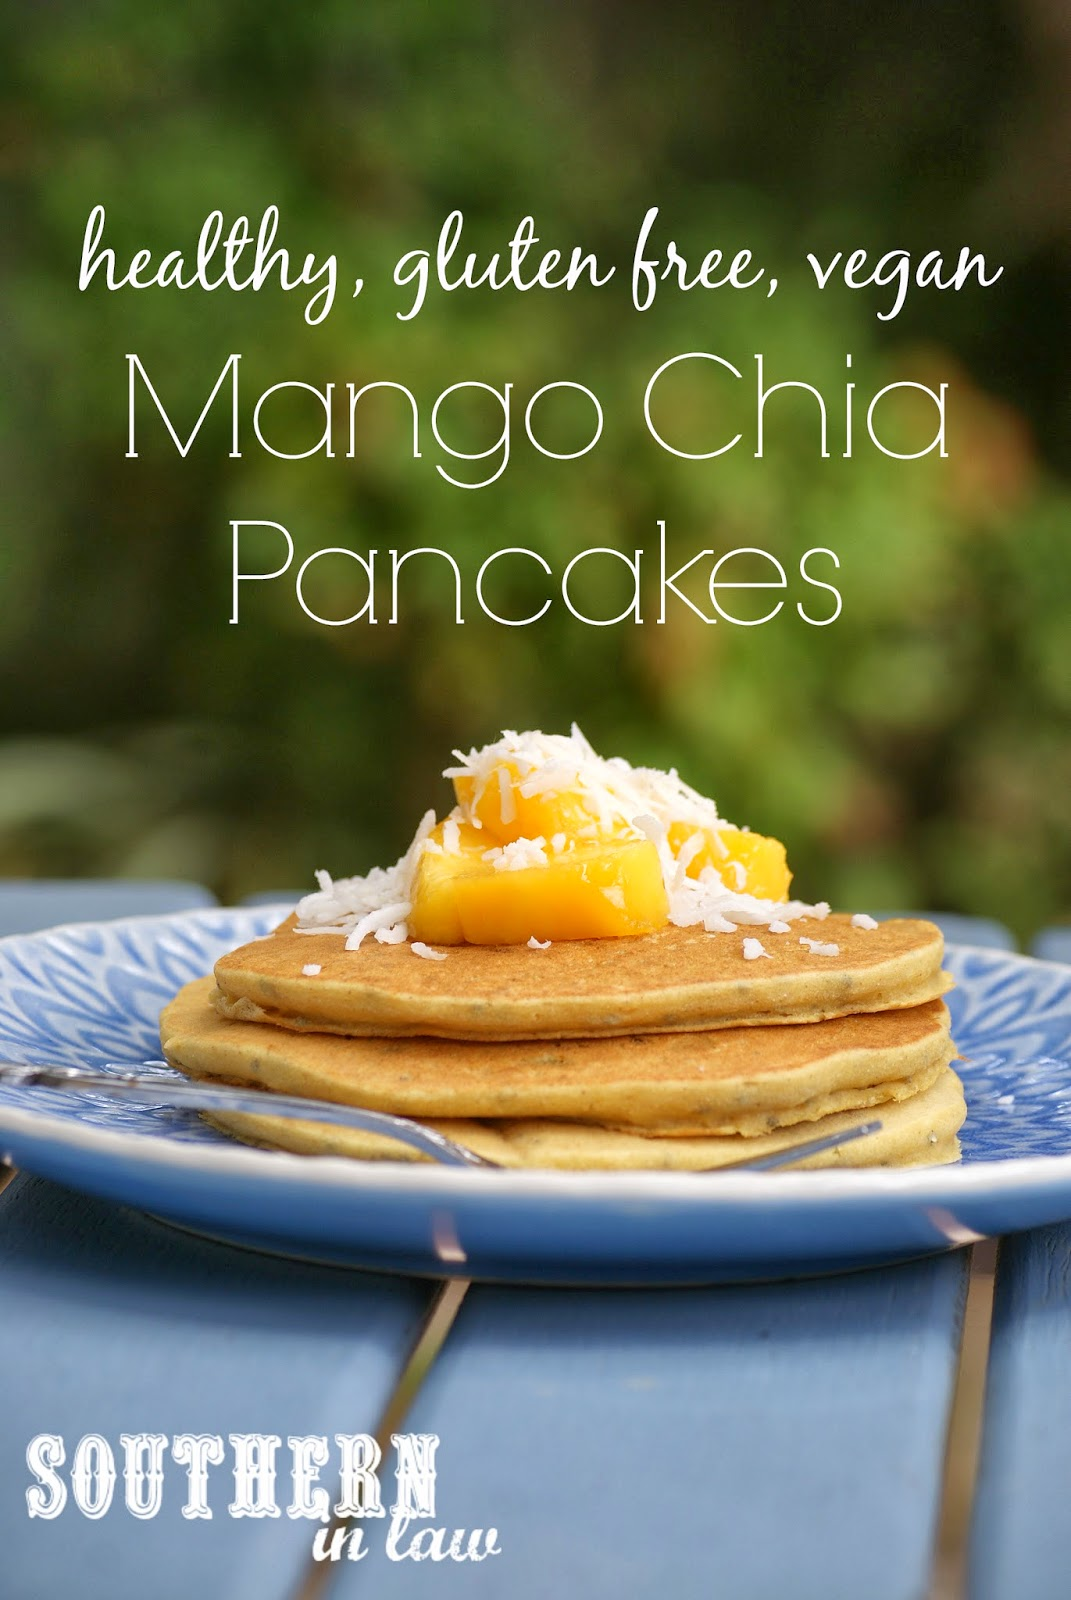 Healthy Mango Chia Pancakes Recipe - gluten free, low fat, sugar free, clean eating friendly, vegan